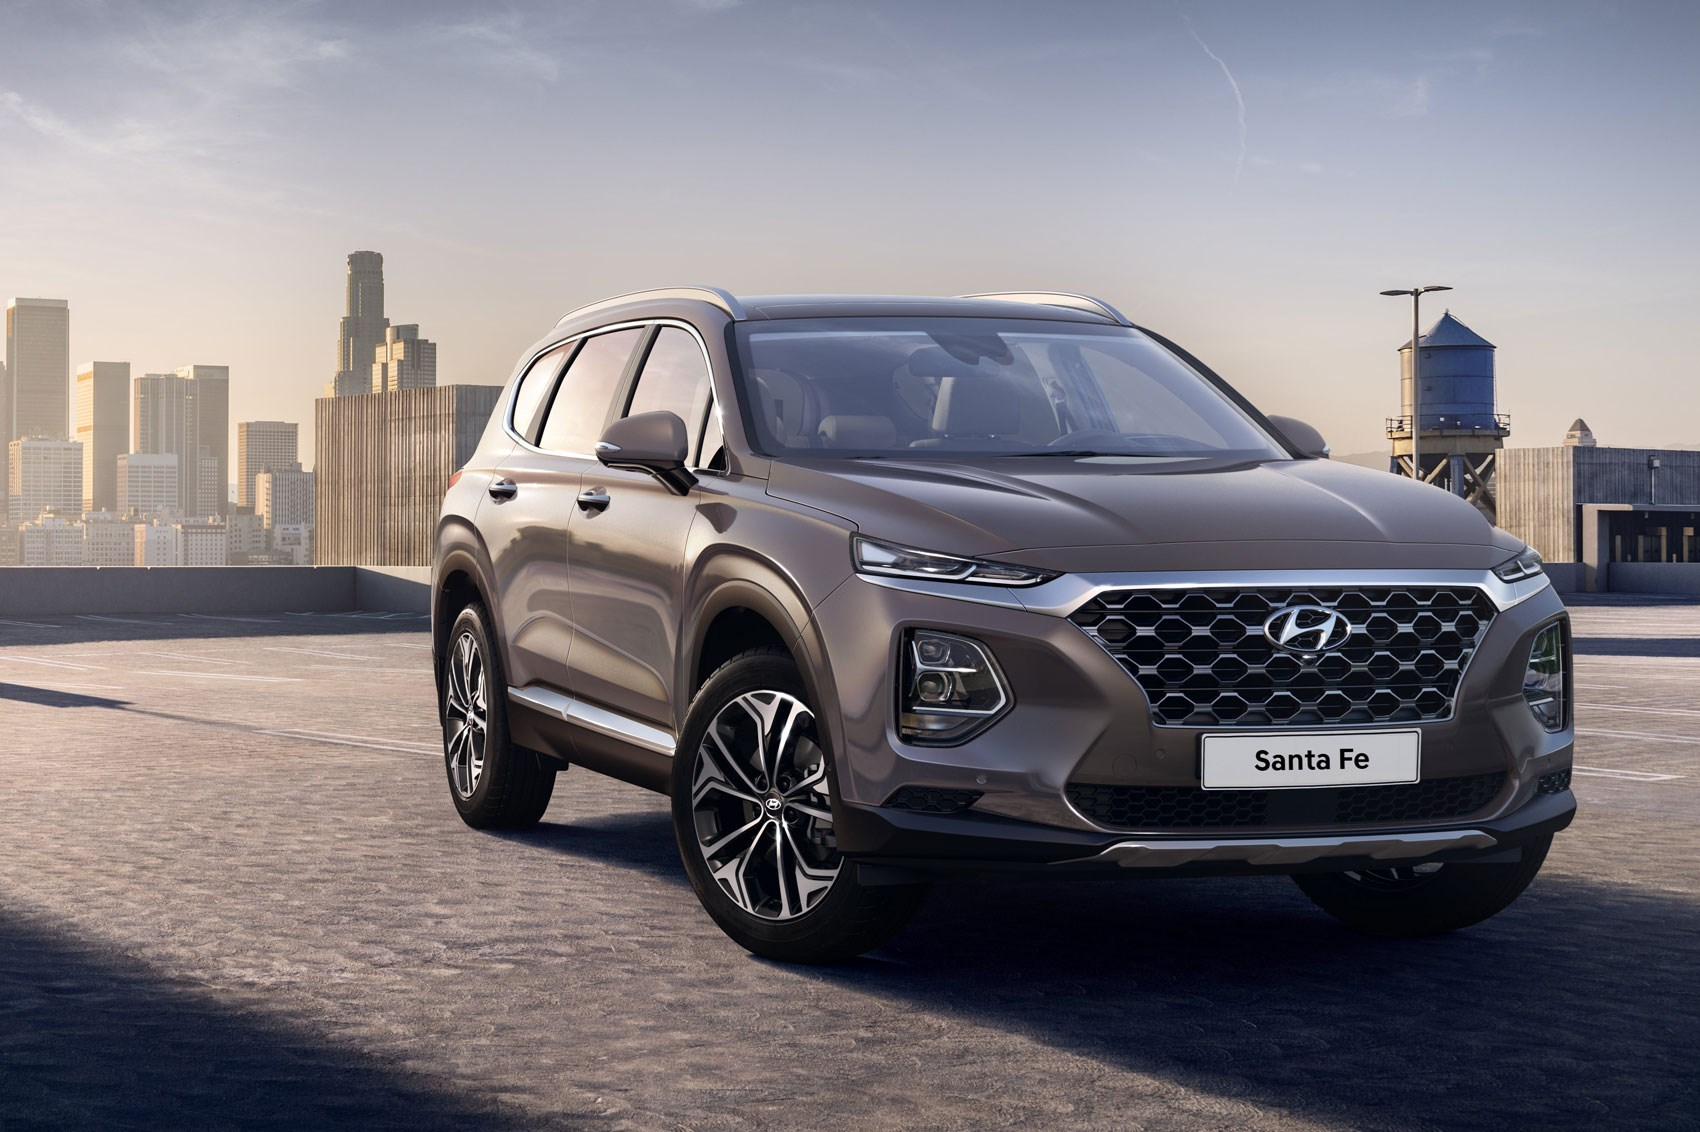 New Hyundai Santa Fe Suv First Pictures Drop Of Seven Seat 4x4